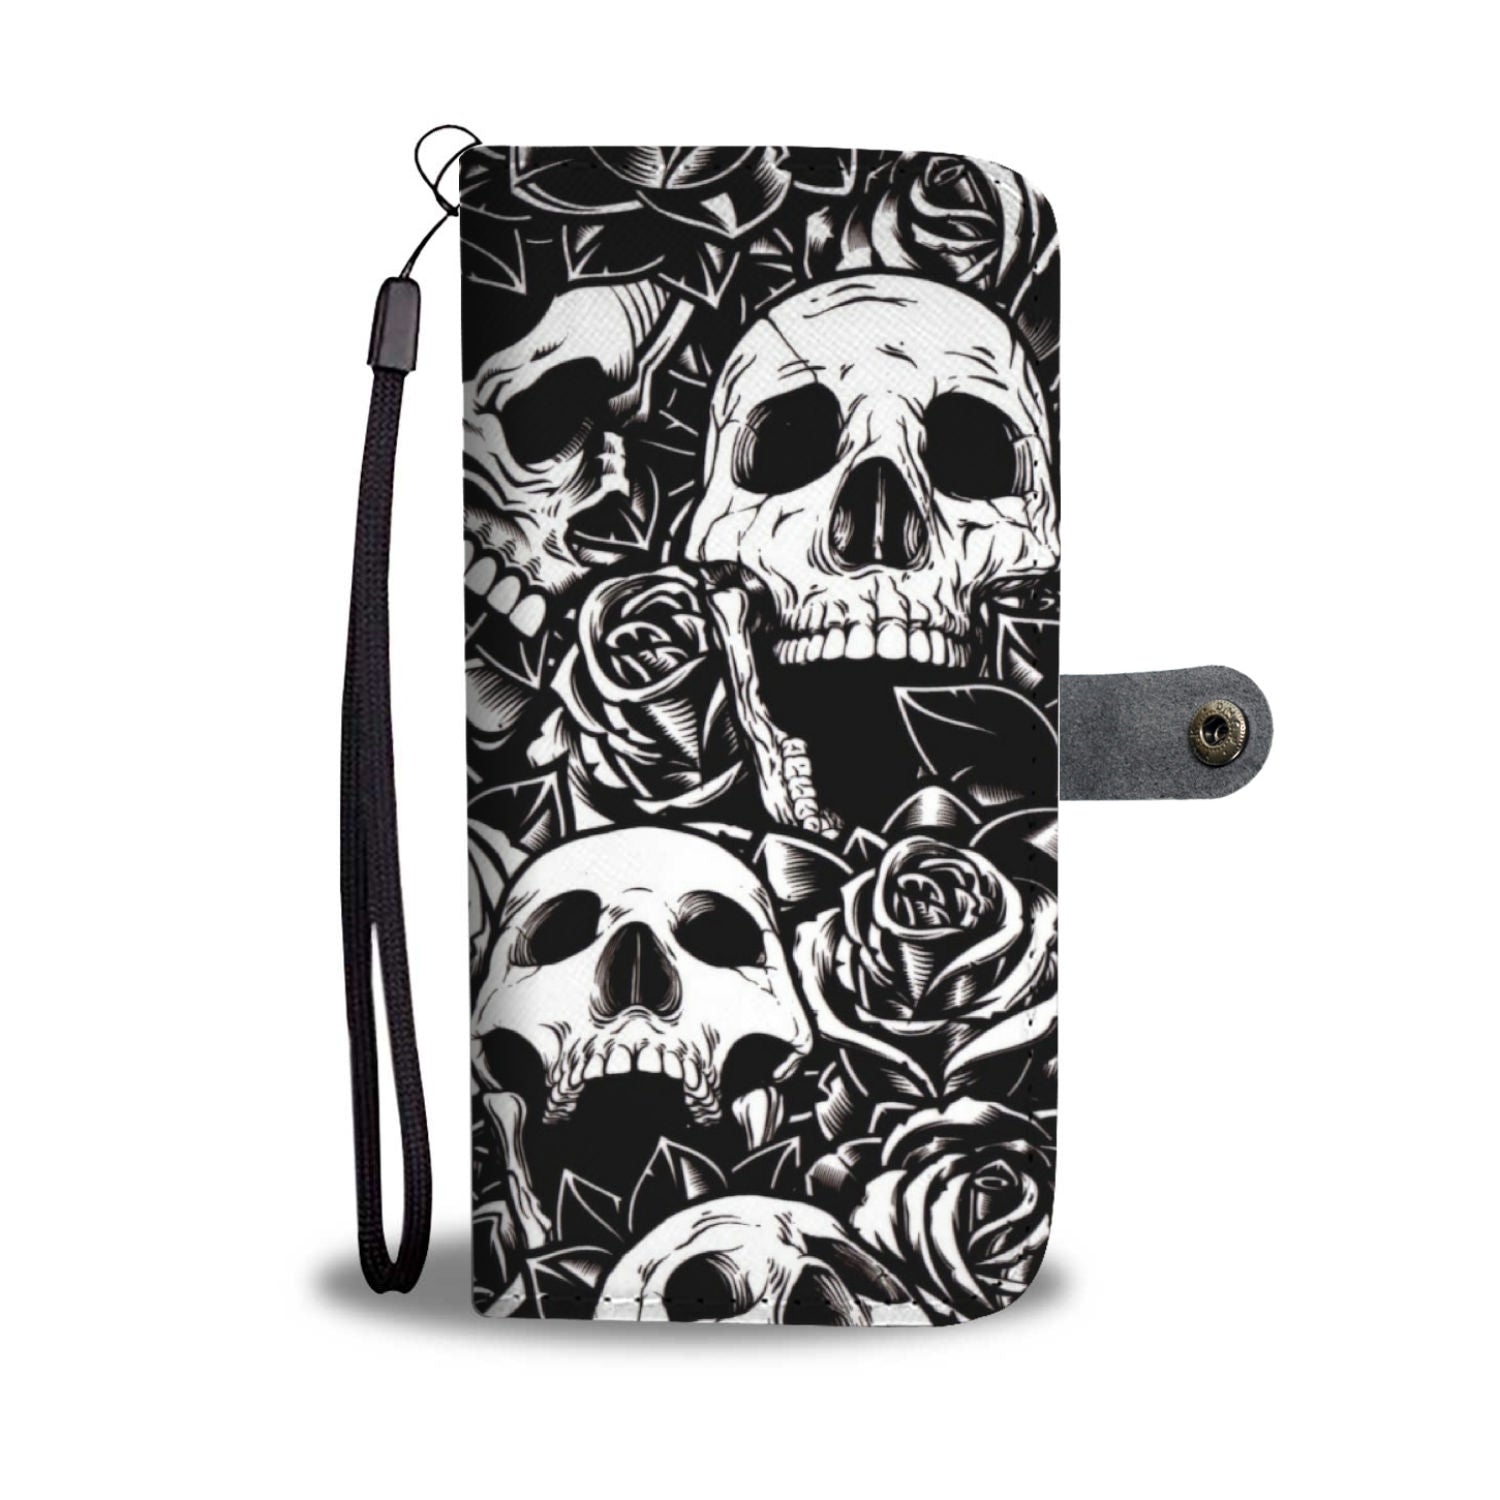 Roses and Skulls - Wallet case - fastandtune